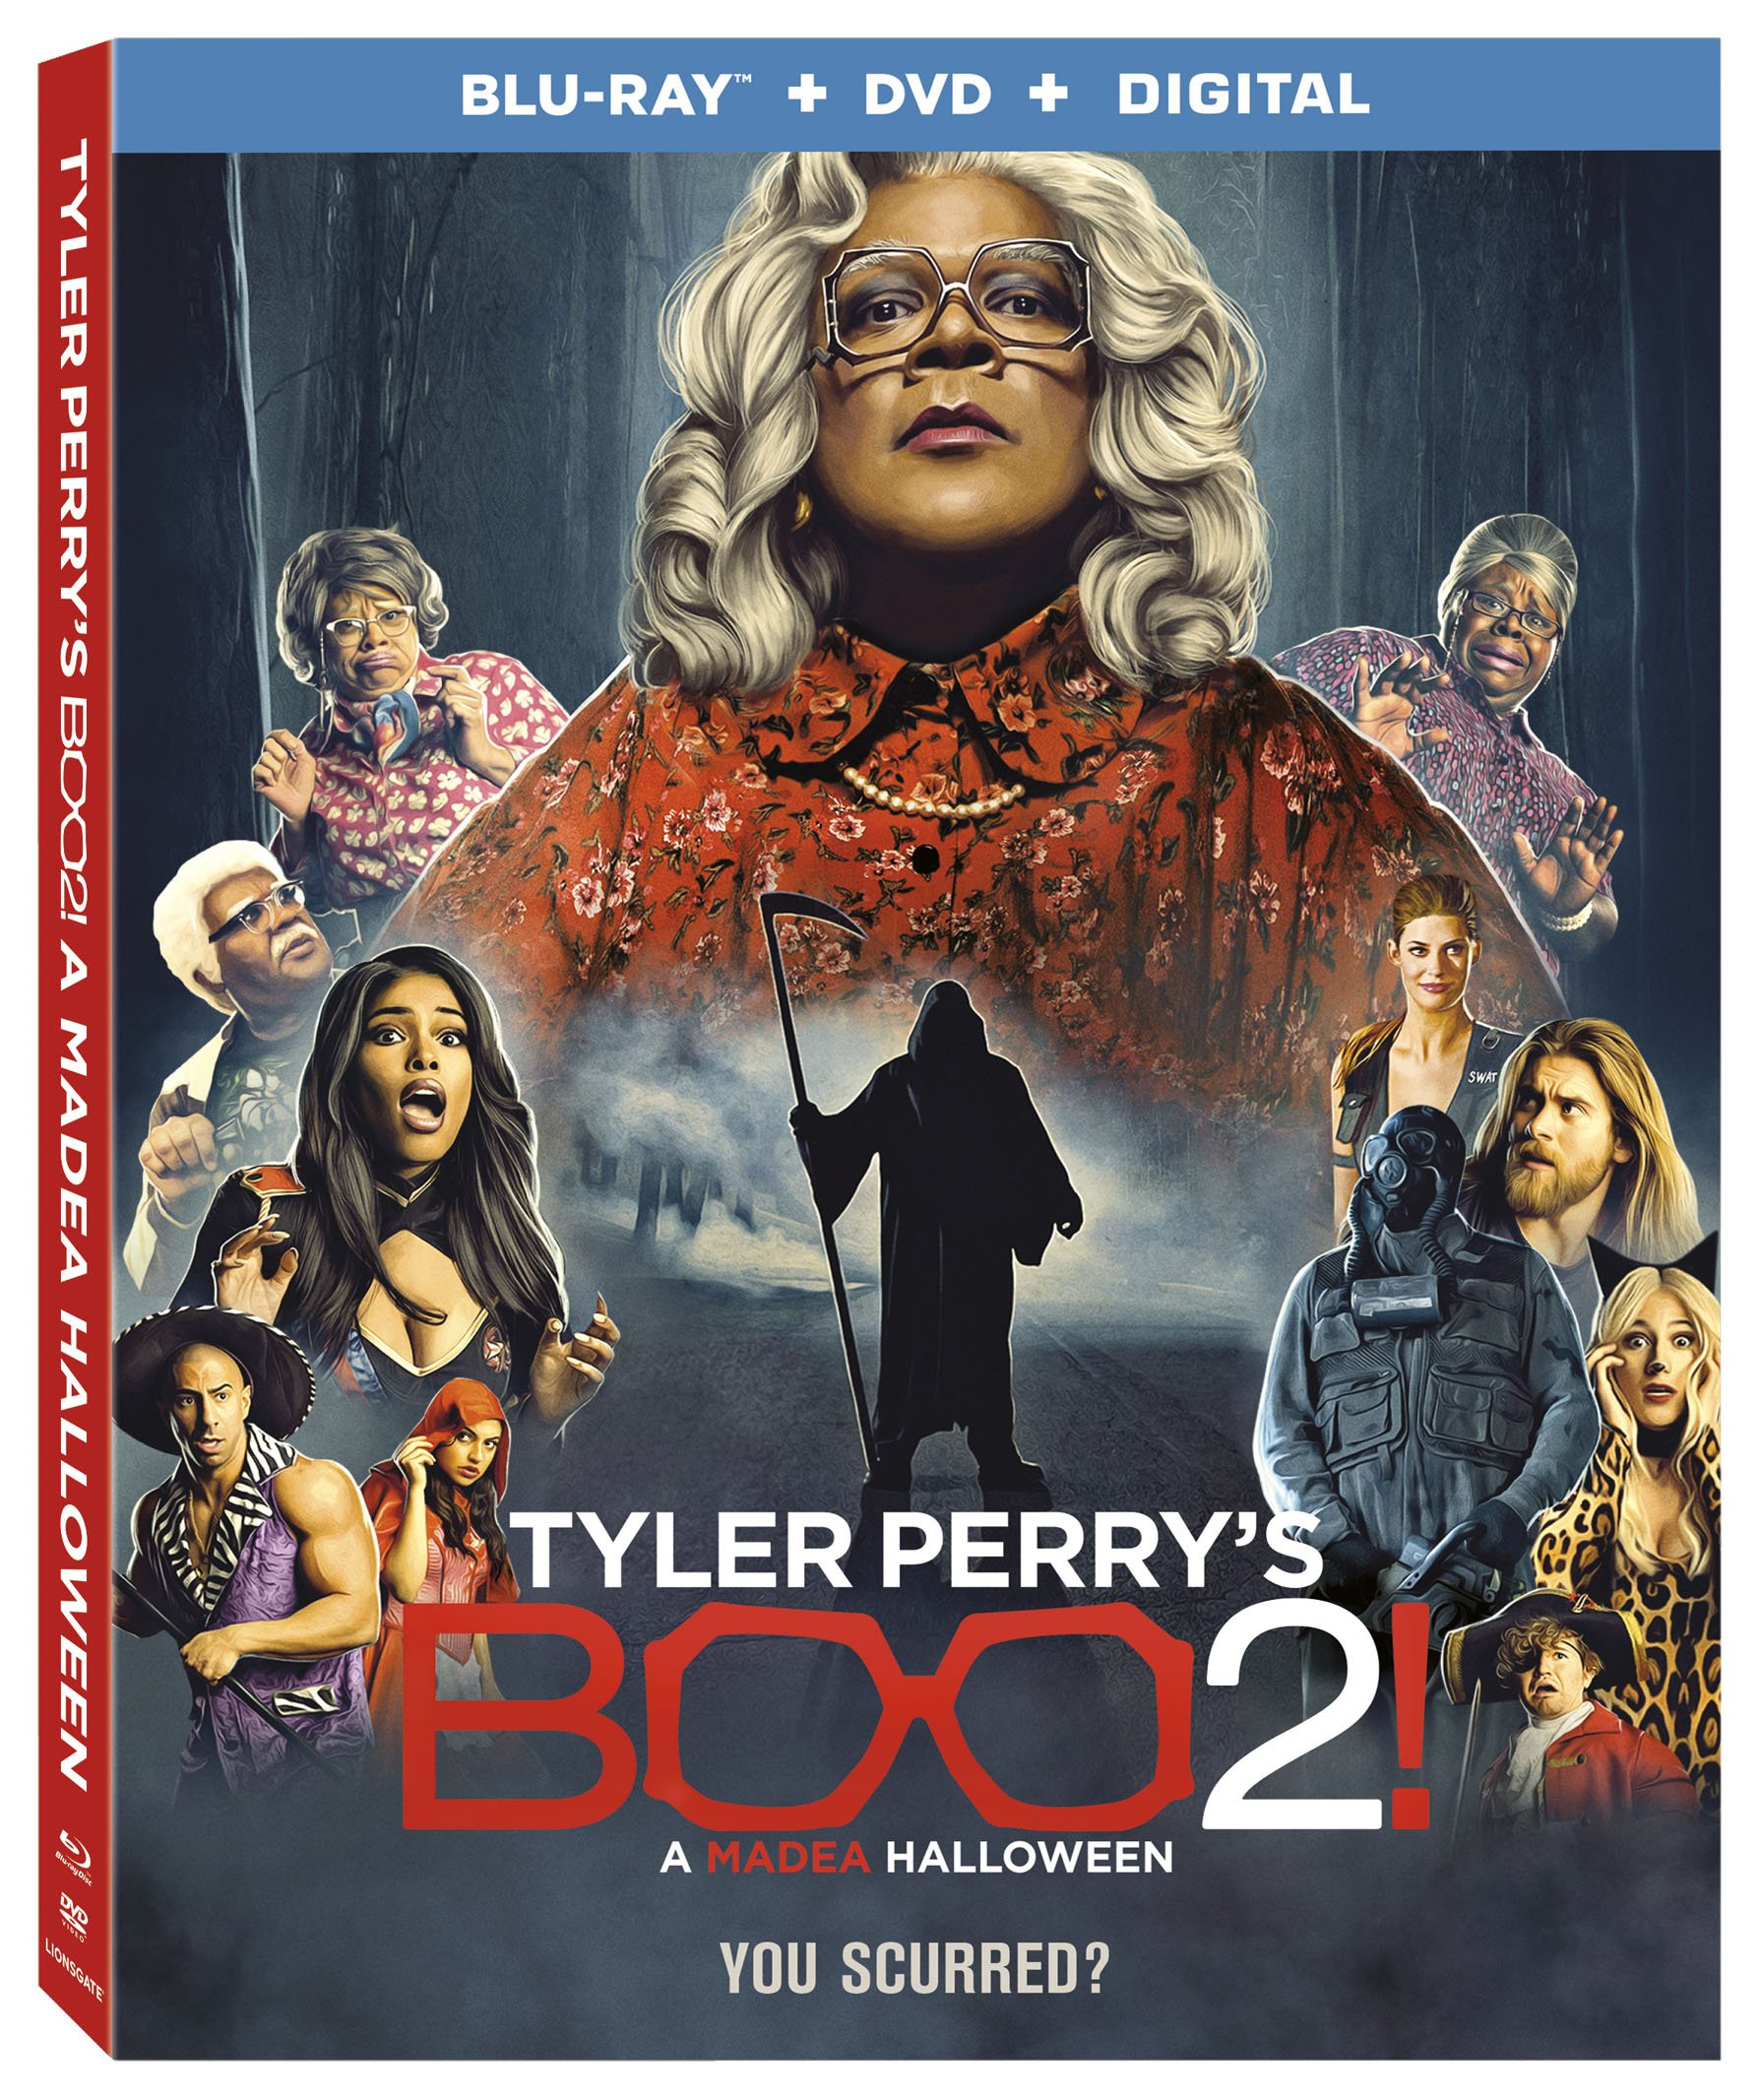 Blu-ray : Tyler Perry's Boo 2! A Madea Halloween (With DVD, Ultraviolet Digital Copy, 2 Pack, AC-3, Dolby)